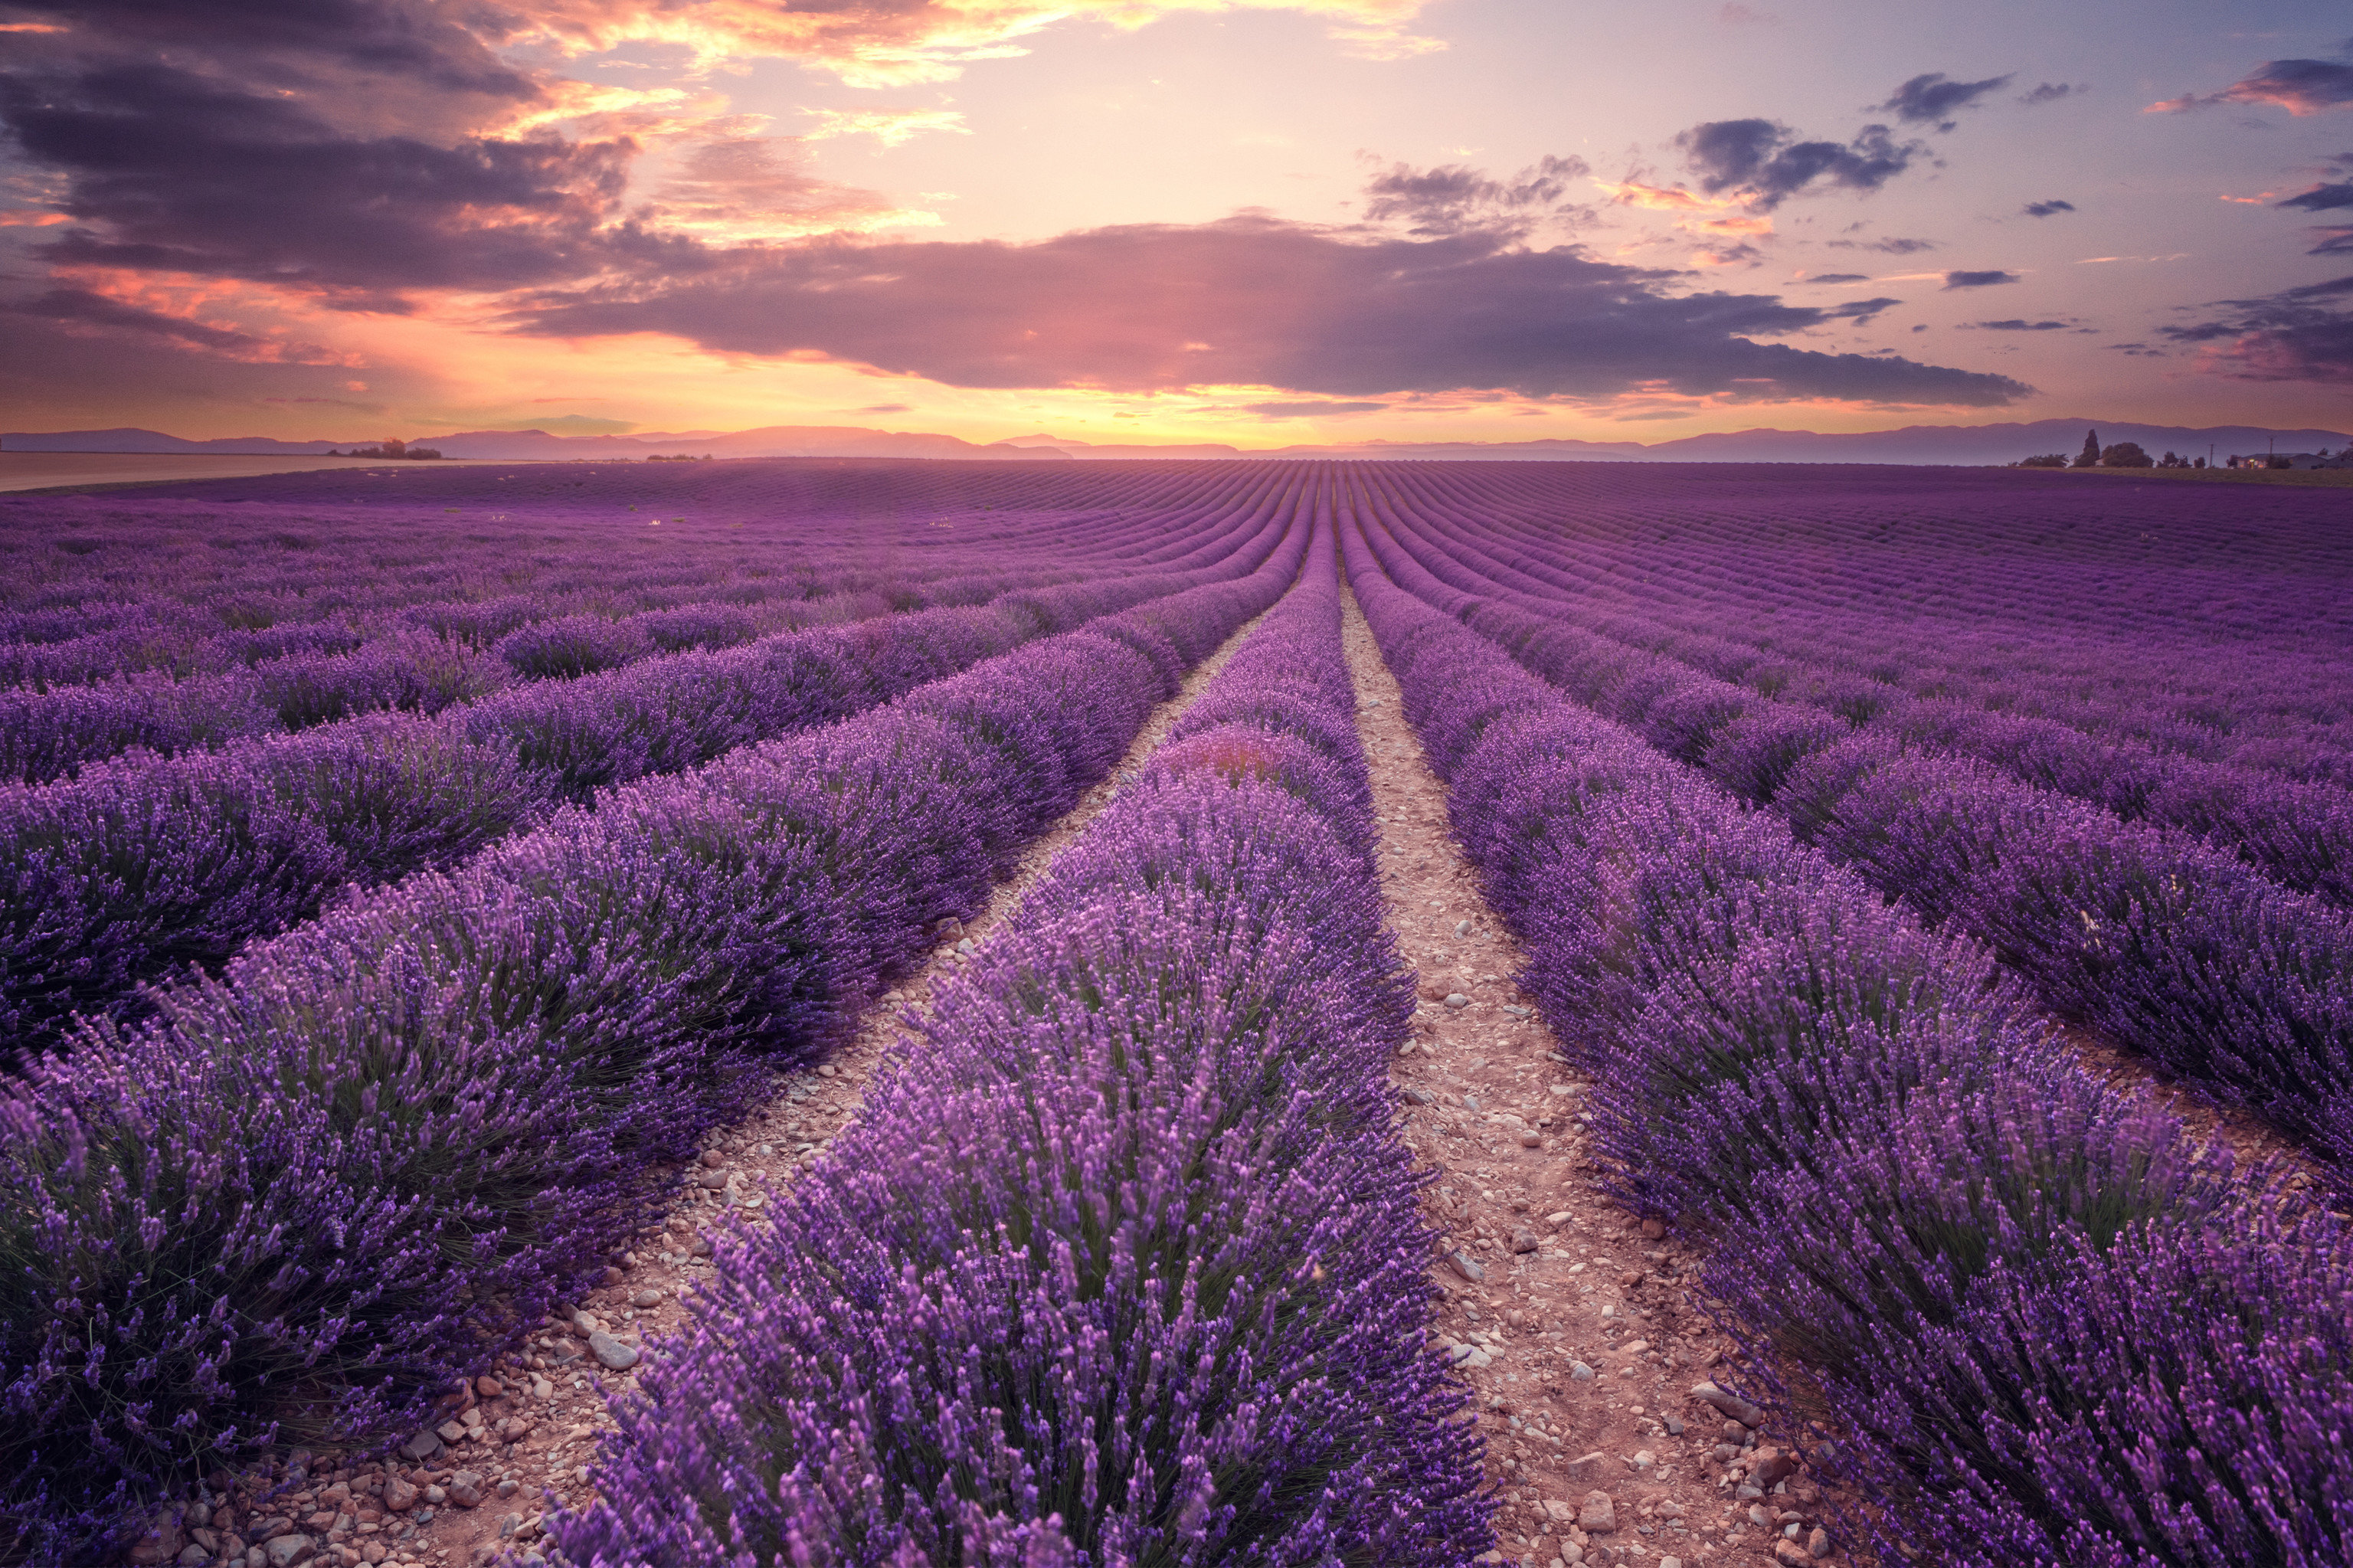 Hotels Road Trips Trip Ideas sky outdoor field purple english lavender lavender dawn morning crop phenomenon atmosphere prairie horizon sunlight landscape cloud ecoregion grass family evening flower agriculture grass meadow spring computer wallpaper sunrise afterglow dusk commodity clouds day